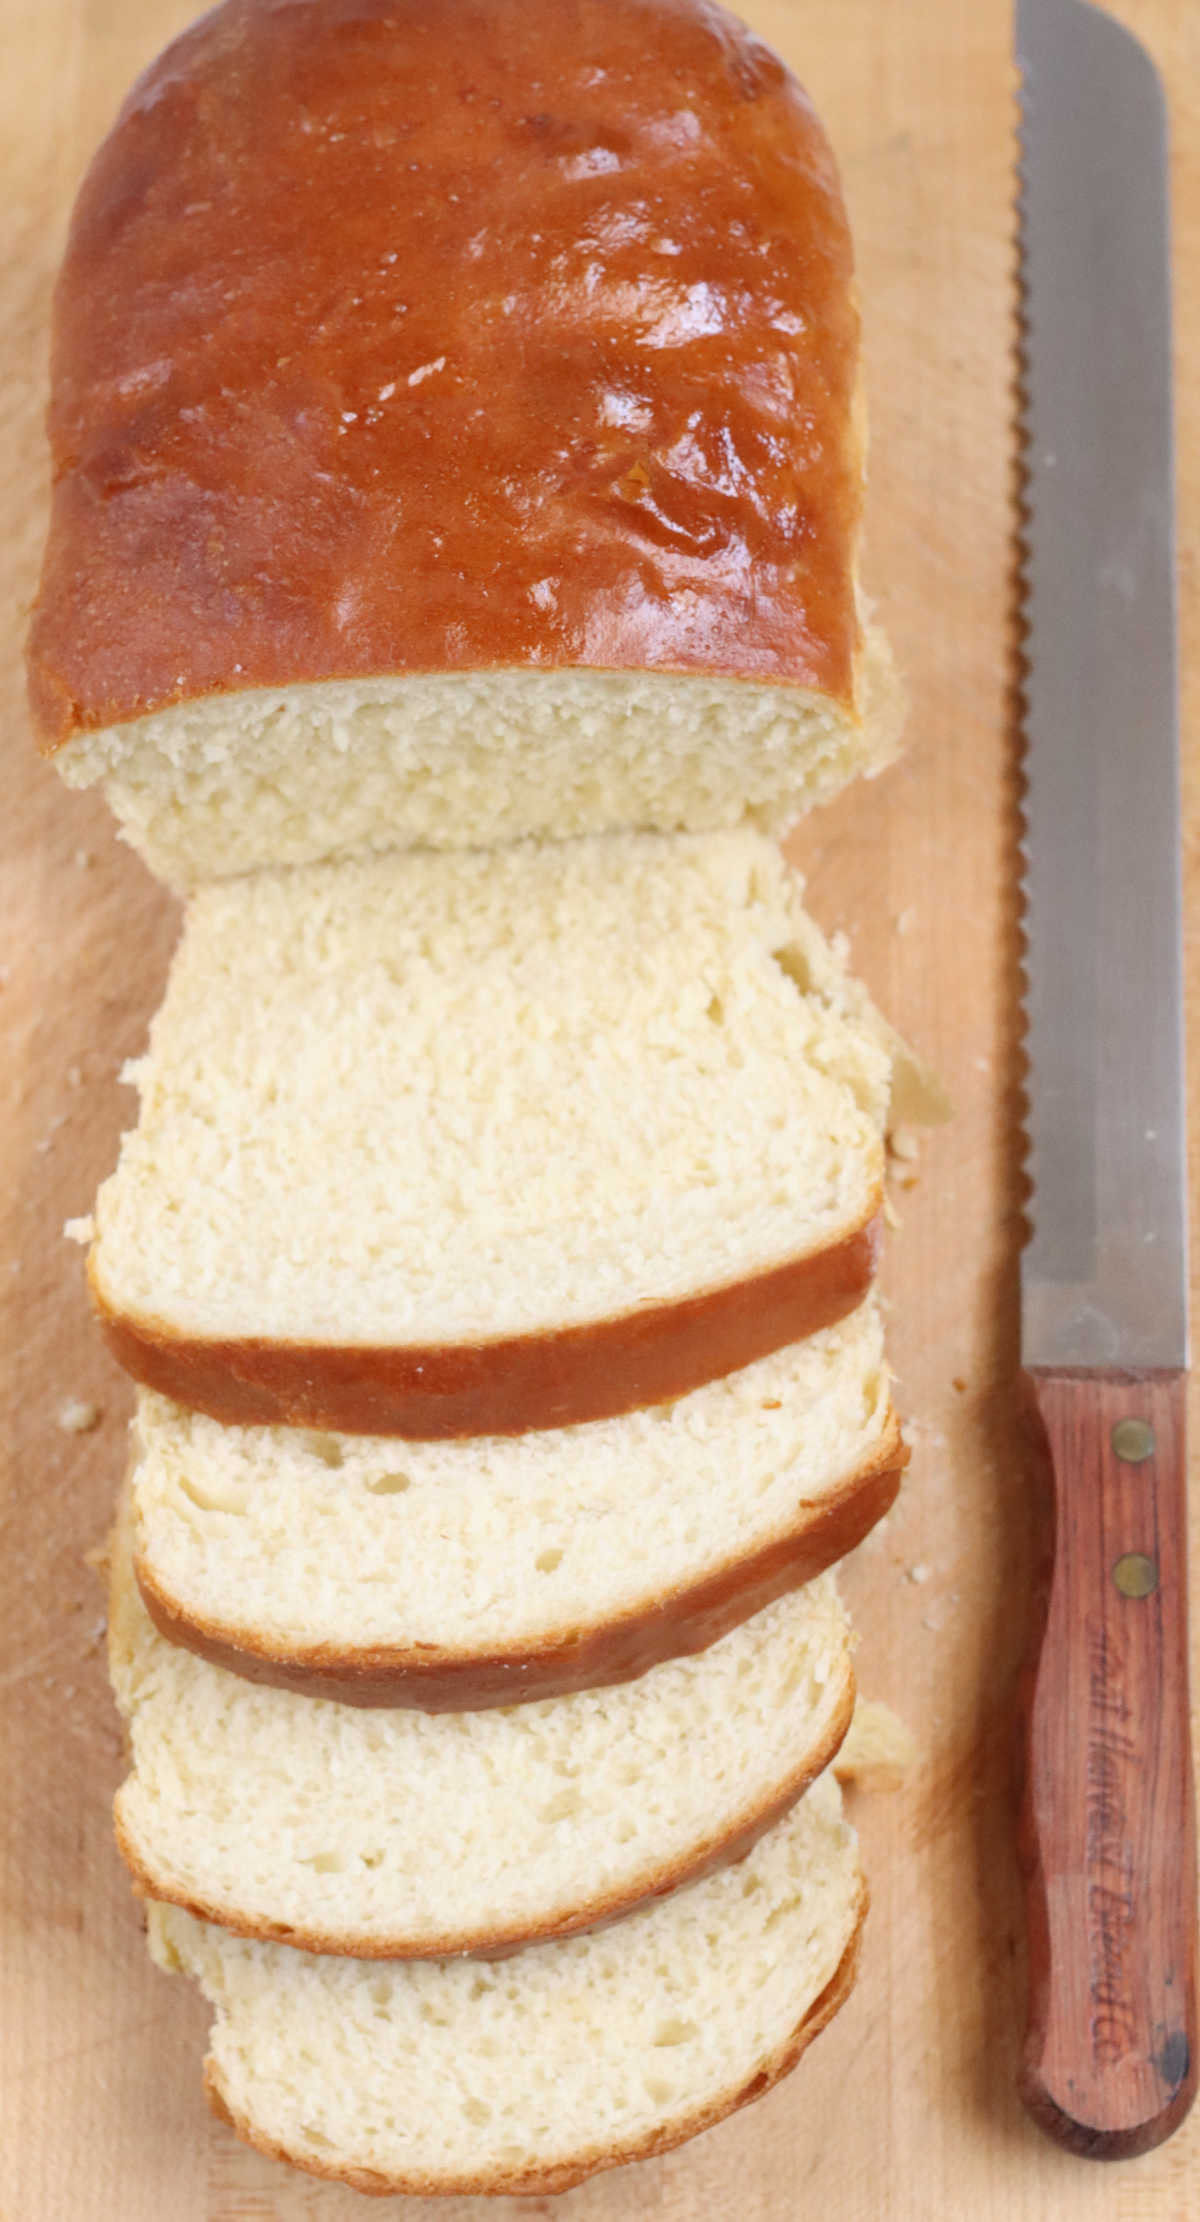 Loaf of white bread sliced partially on wooden cutting board with bread knife to right.